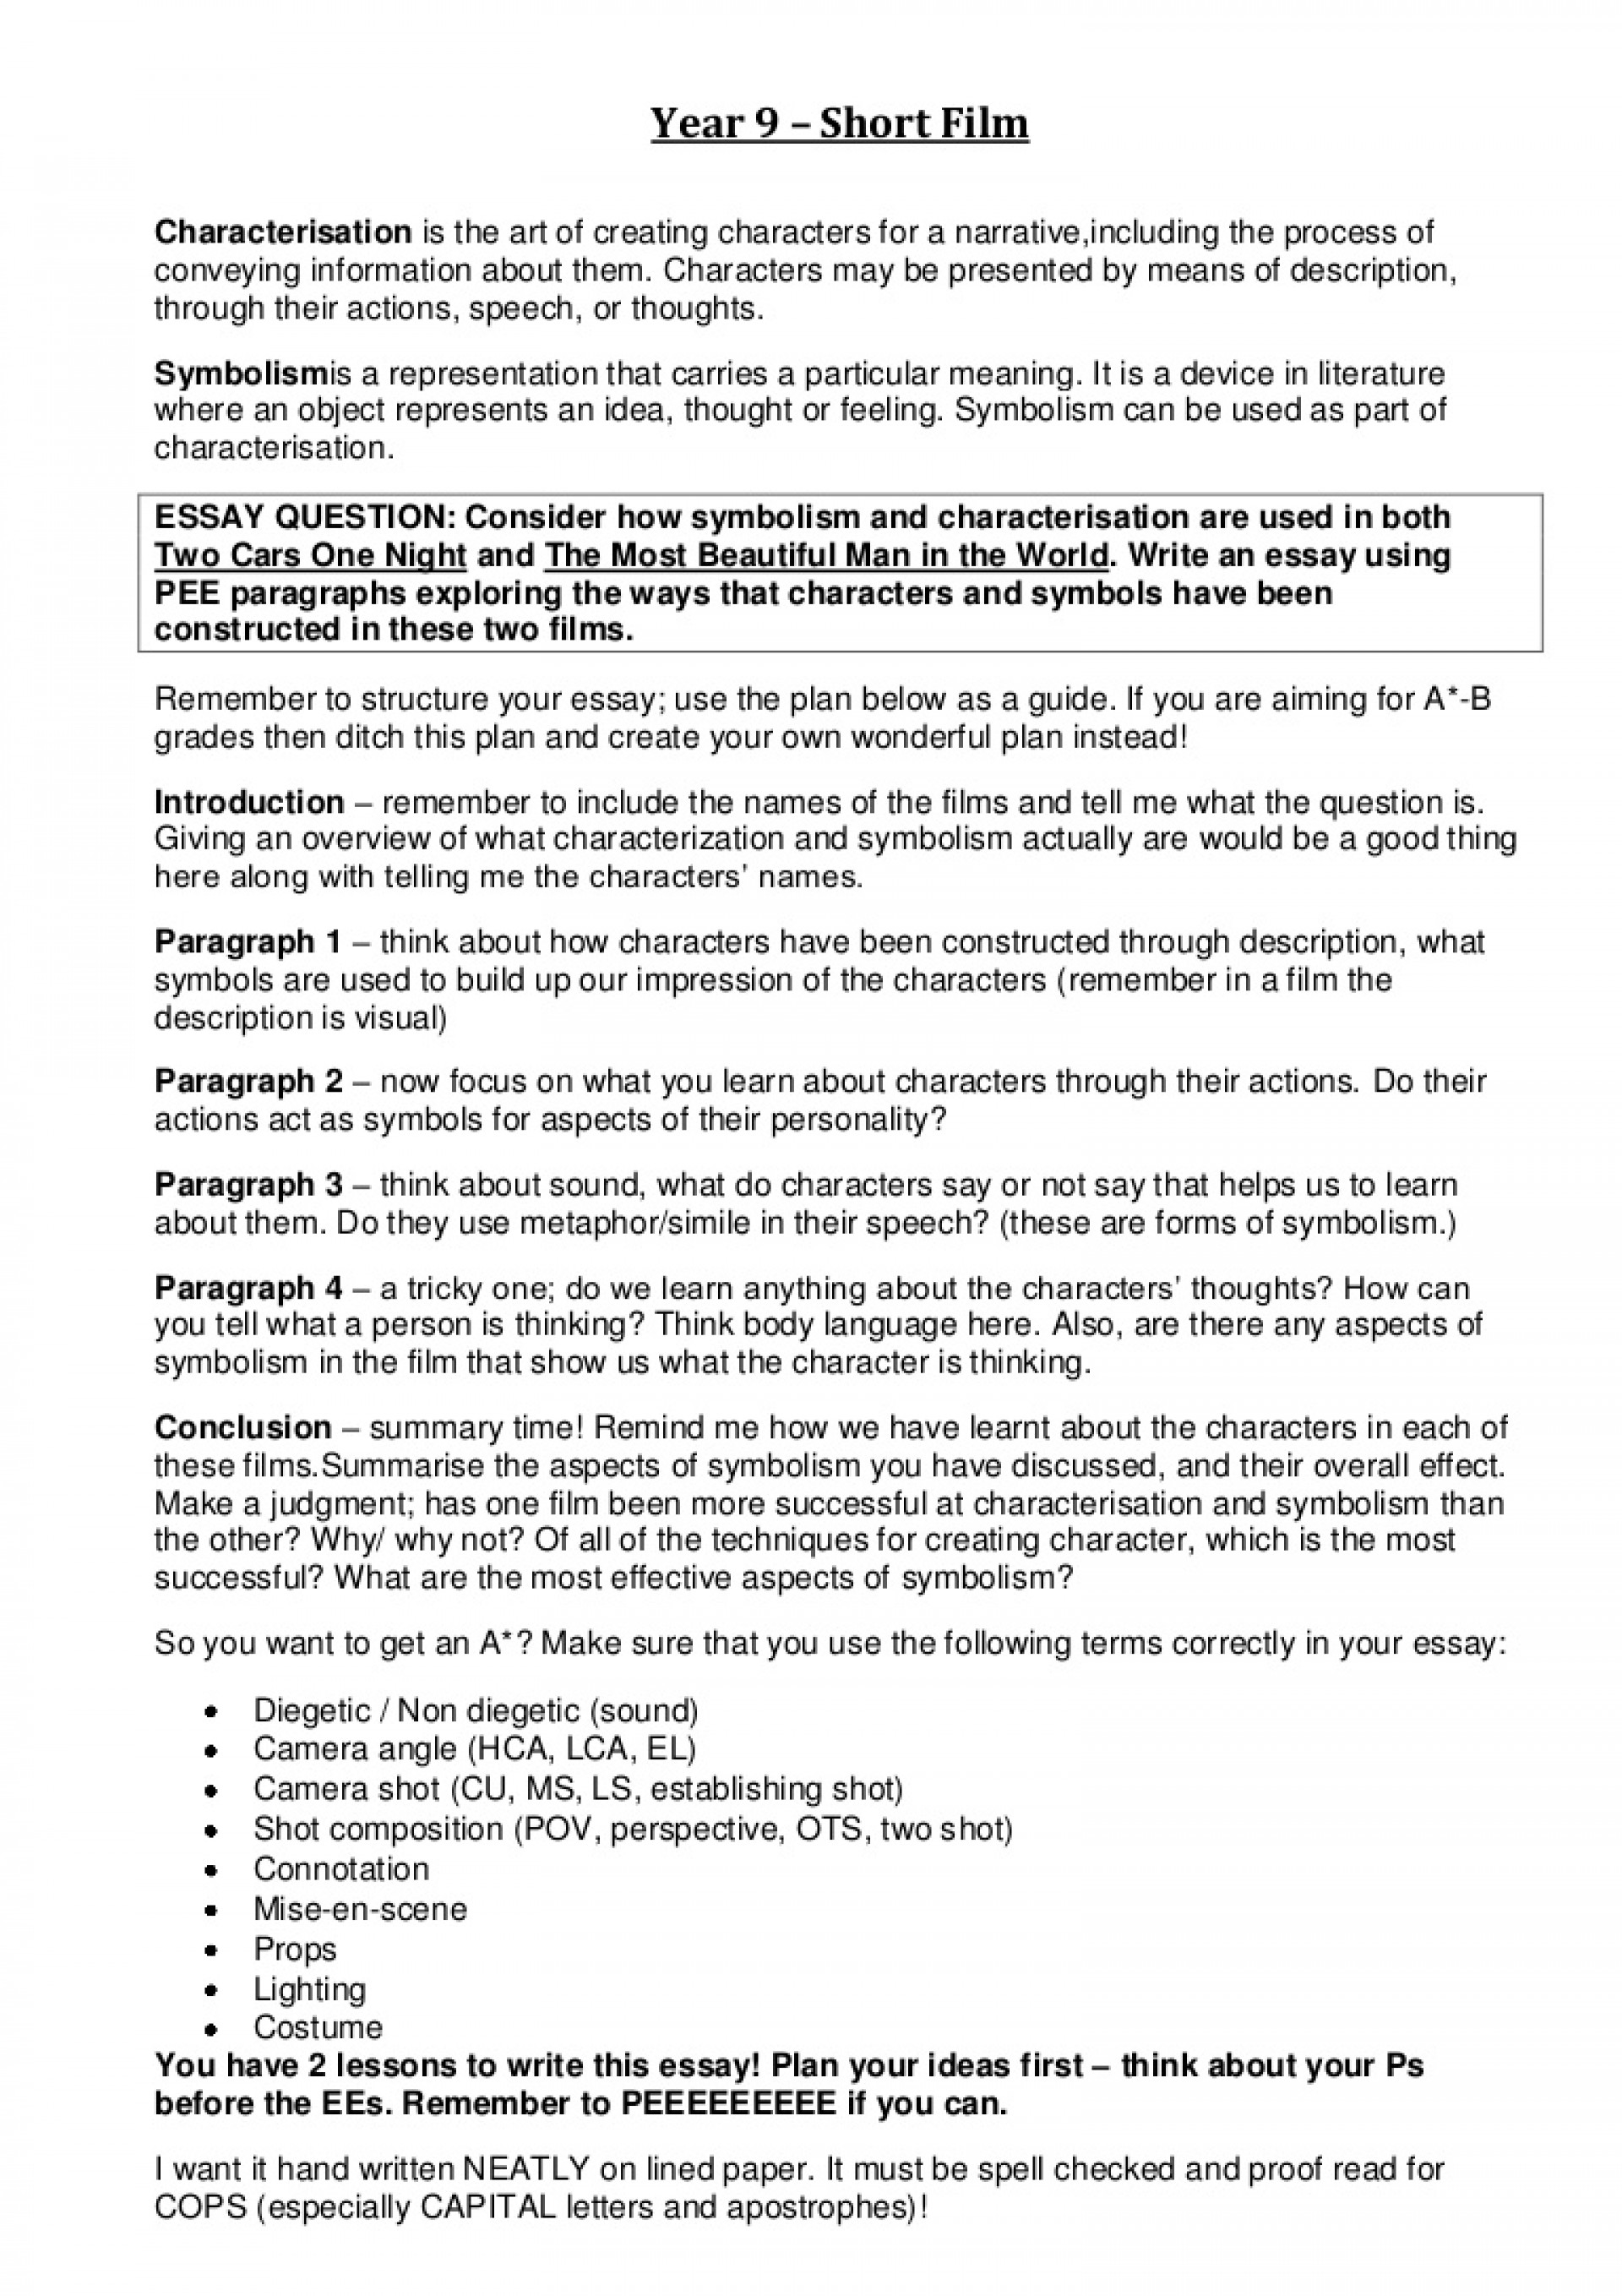 015 How To Write An Essay On Characterization Example Year9shortfilm Chracterisationsymbolismessay Phpapp02 Thumbnail Astounding A Paper Research 1920